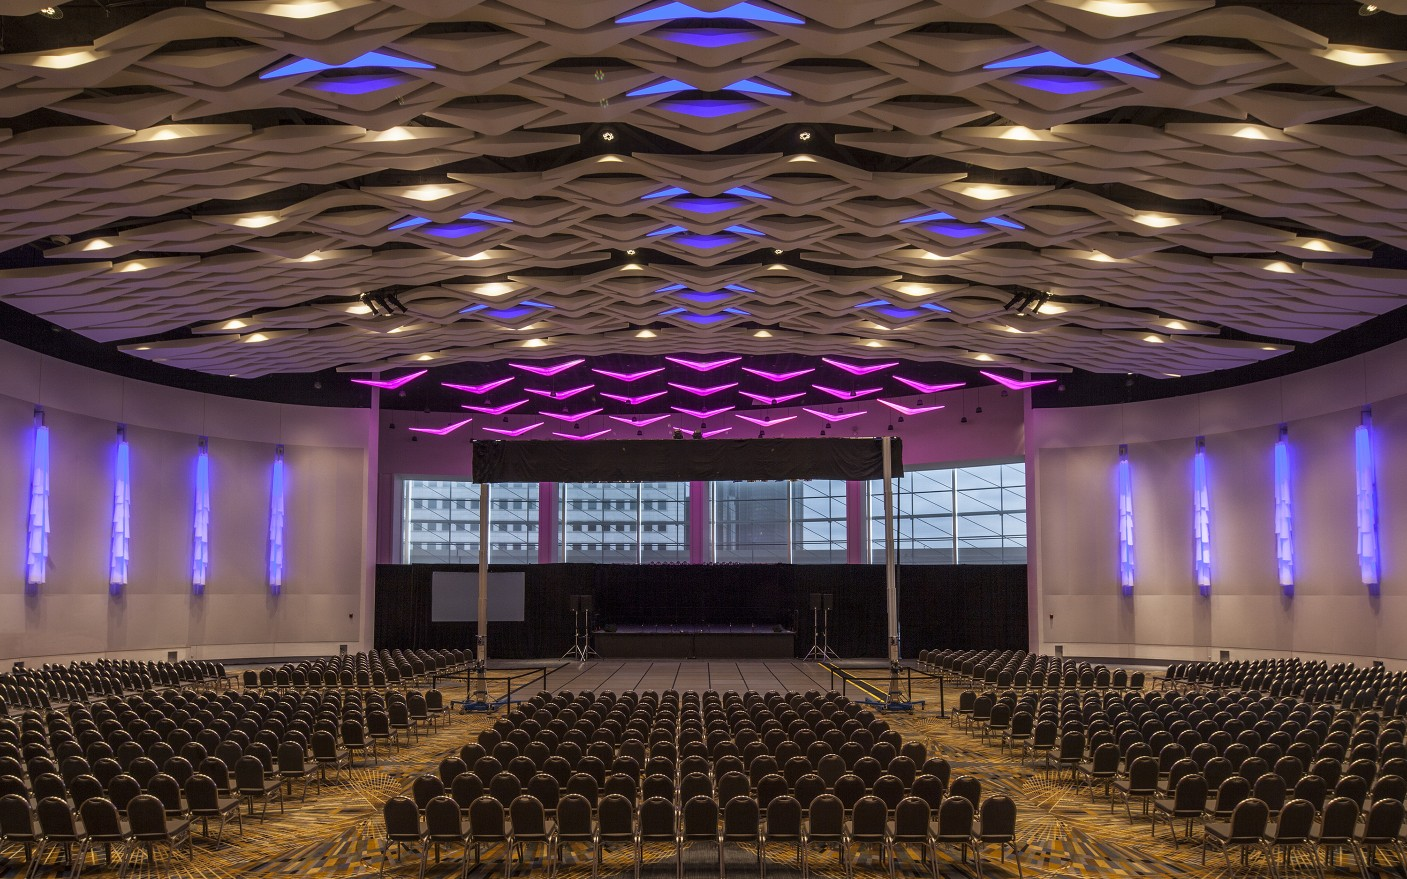 Lumenbeam Large Pendant luminaires were also used in the new ballroom.